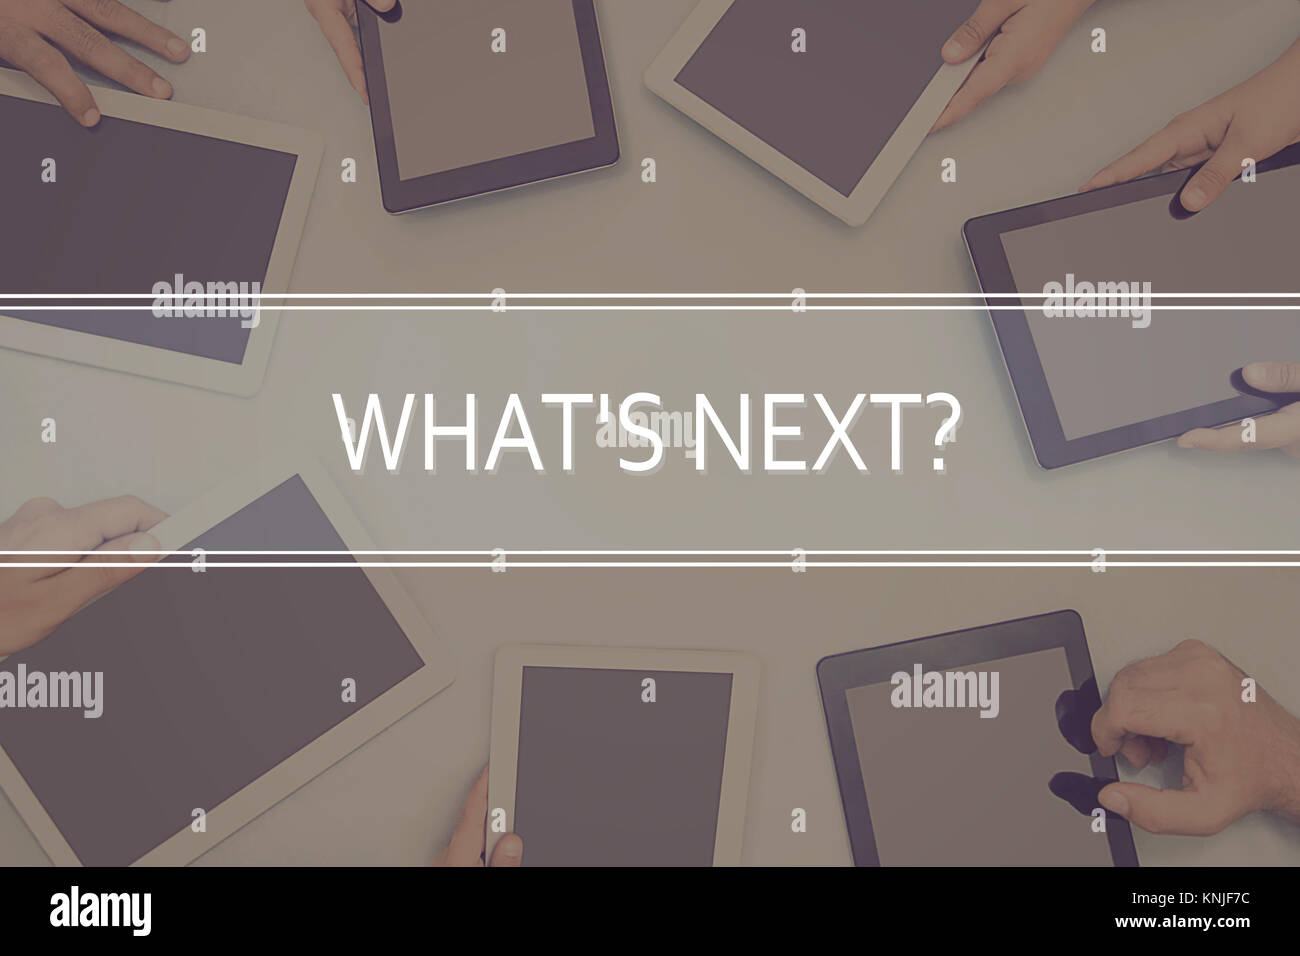 WHAT'S NEXT? CONCEPT Business Concept. - Stock Image